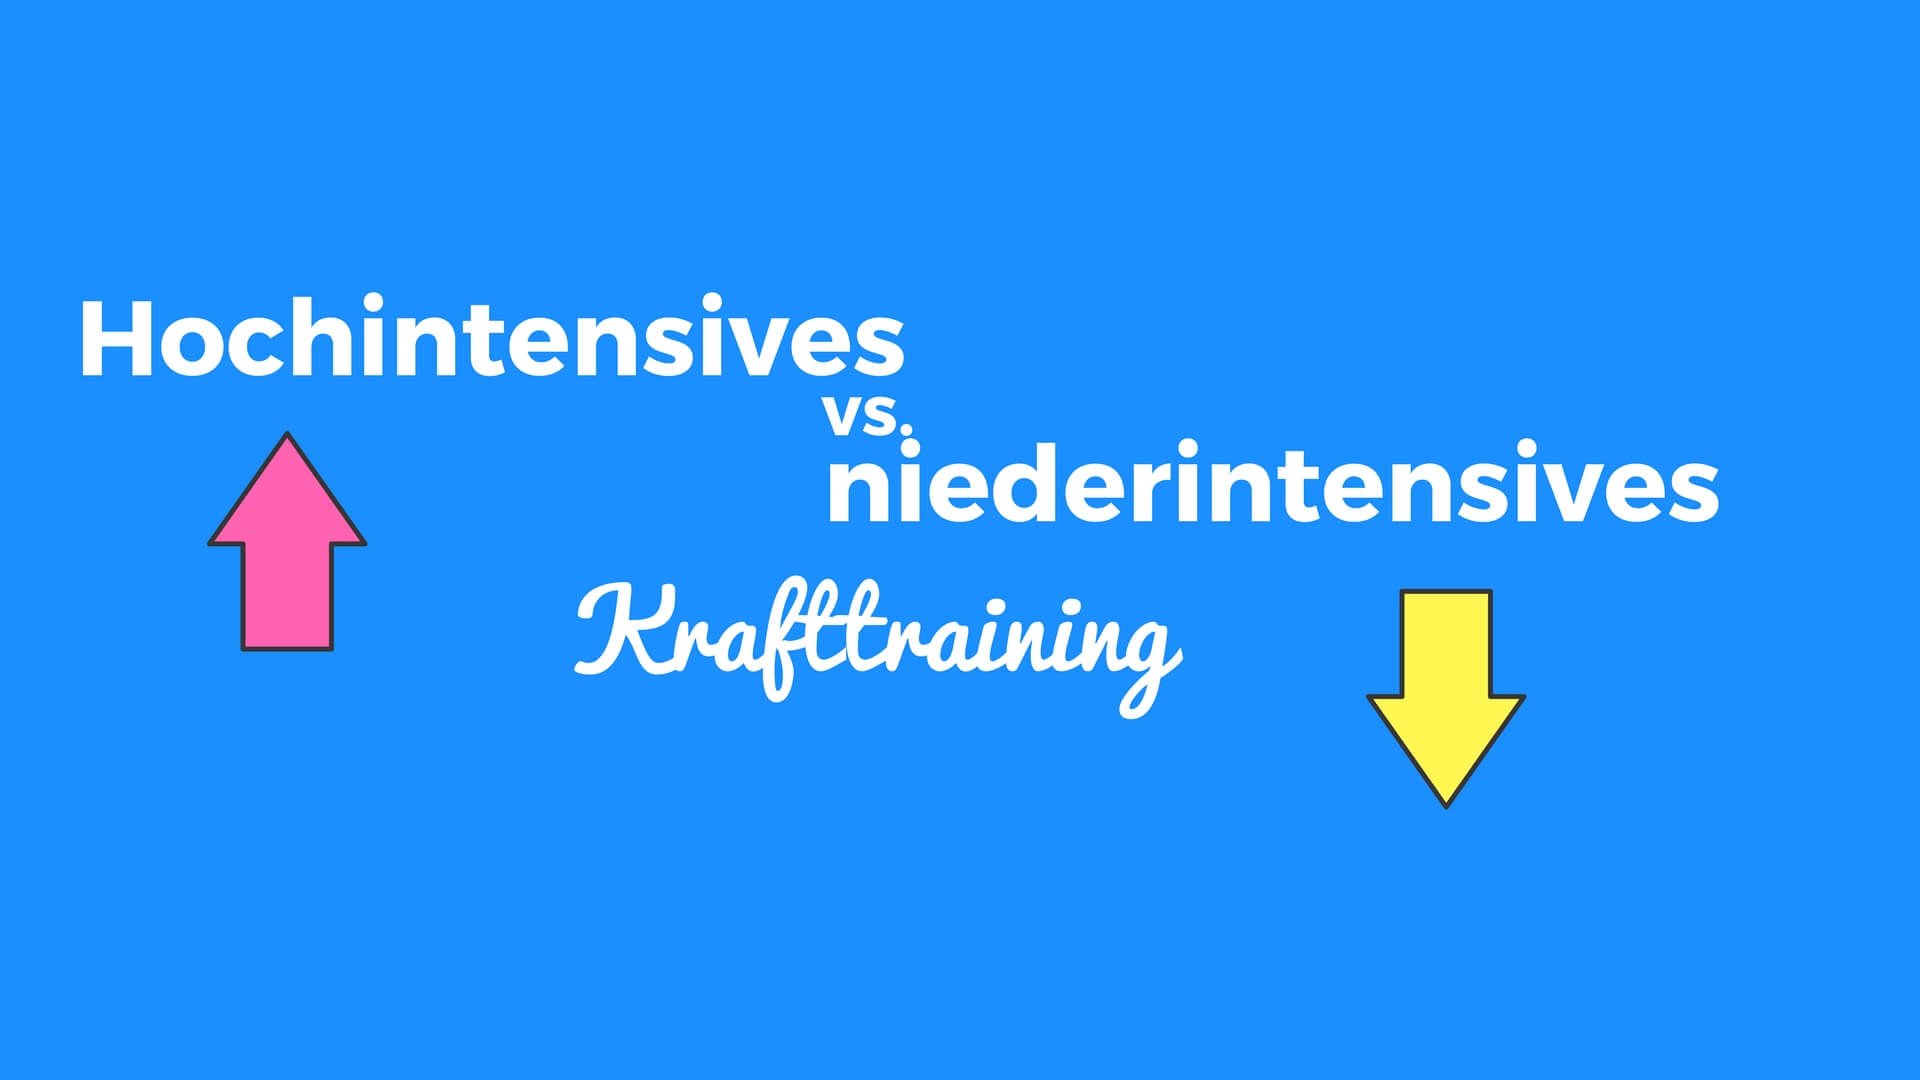 hochintensives vs. niederintensives krafttraining